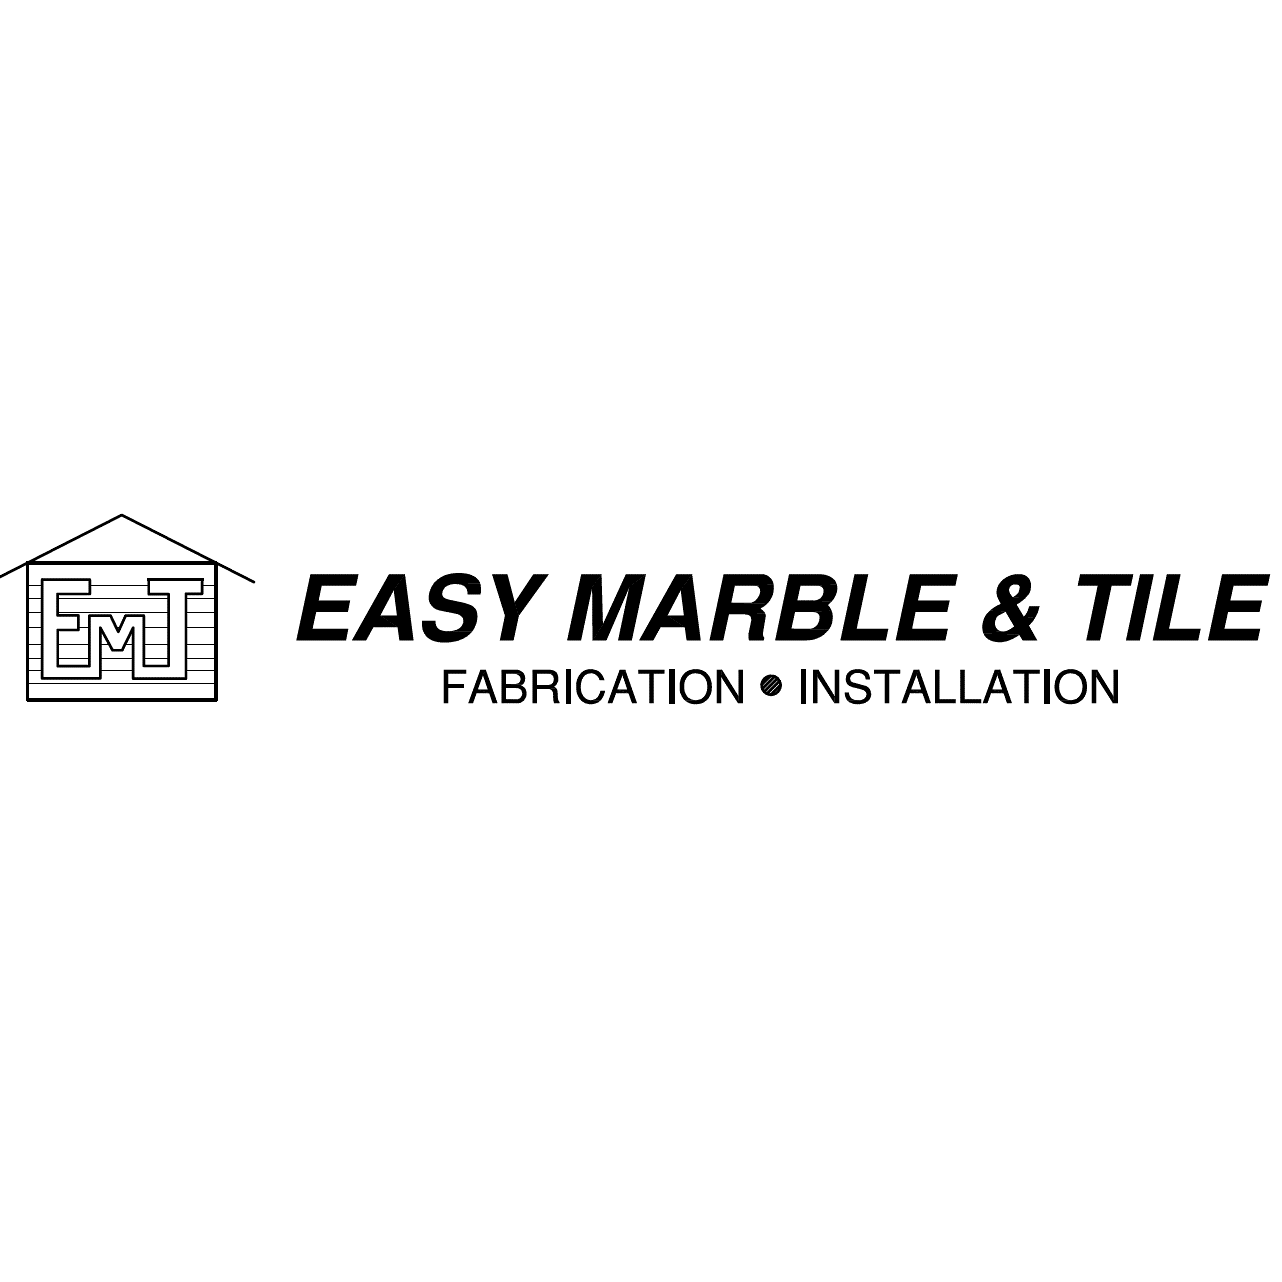 Easy Marble & Tile - Panorama city, CA 91402 - (818)510-4450 | ShowMeLocal.com